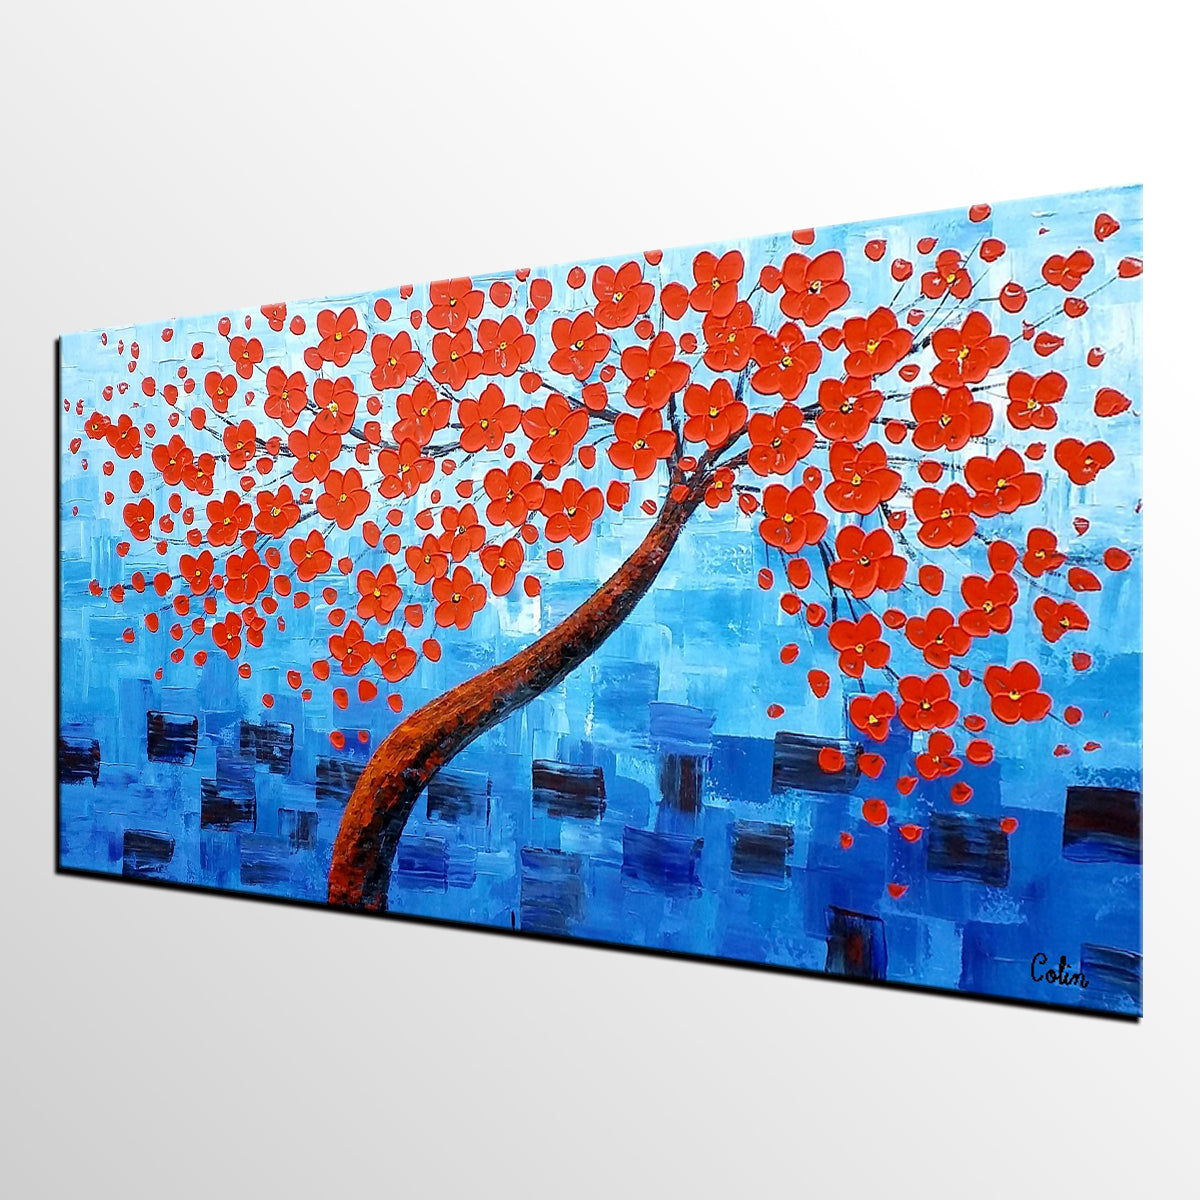 Acrylic Painting, Abstract Painting, Tree Painting, Flower Tree, Large Art, Canvas Art, Wall Art, Canvas Painting, Impasto Art